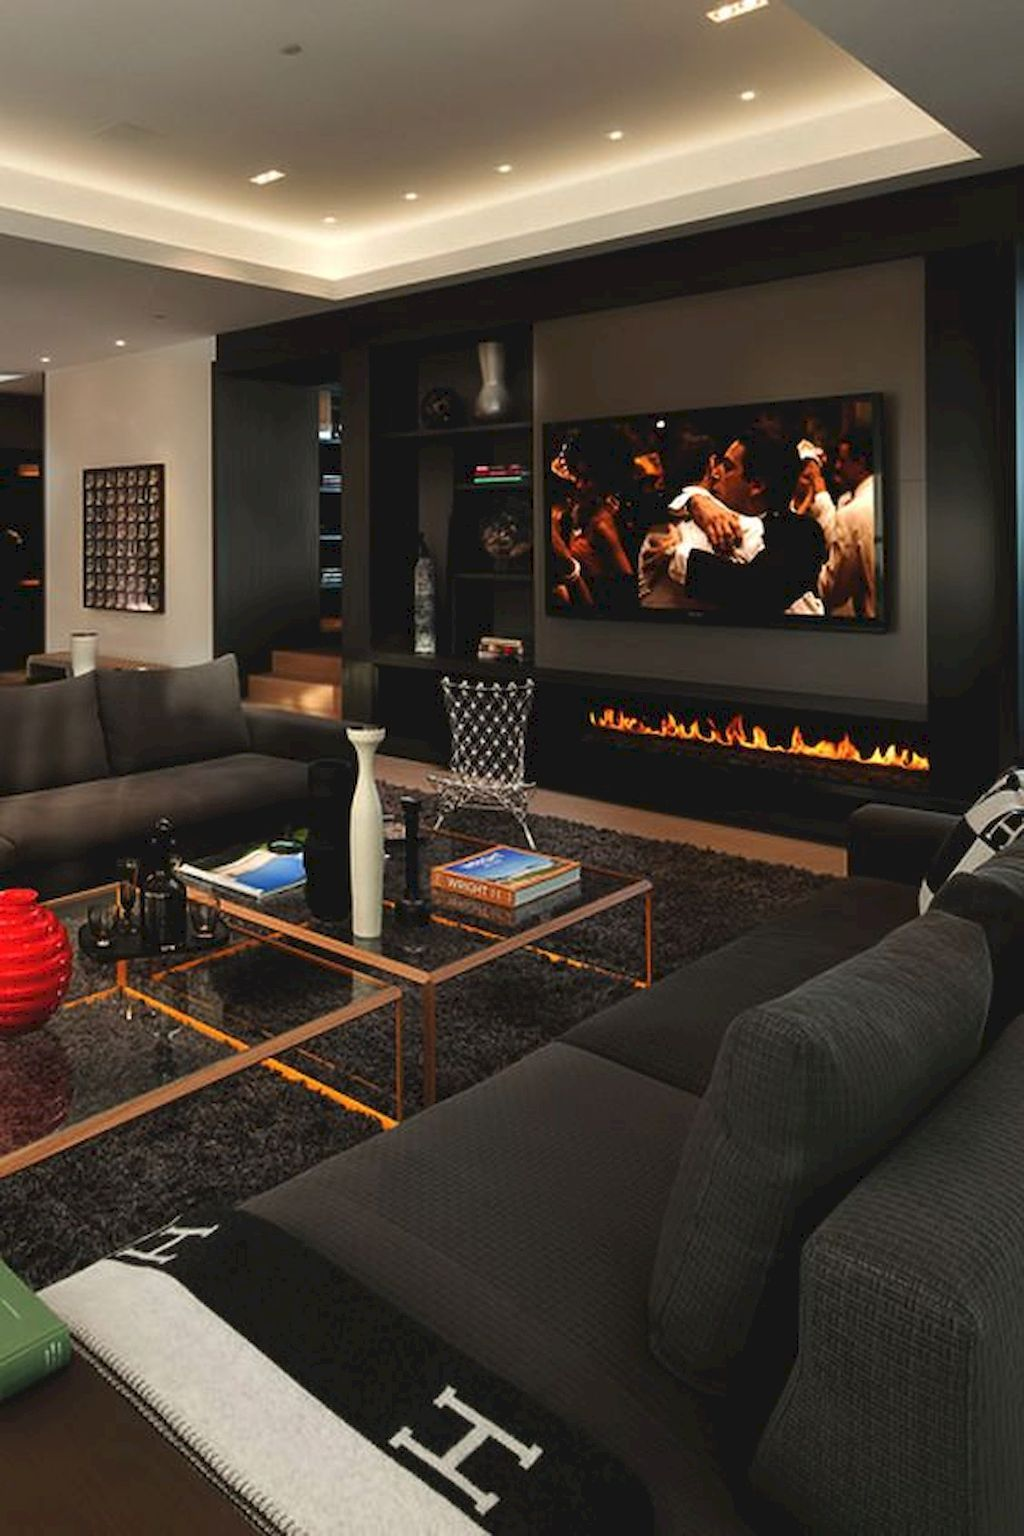 Cool 60 Tv Wall Living Room Ideas Decor On A Budget Source